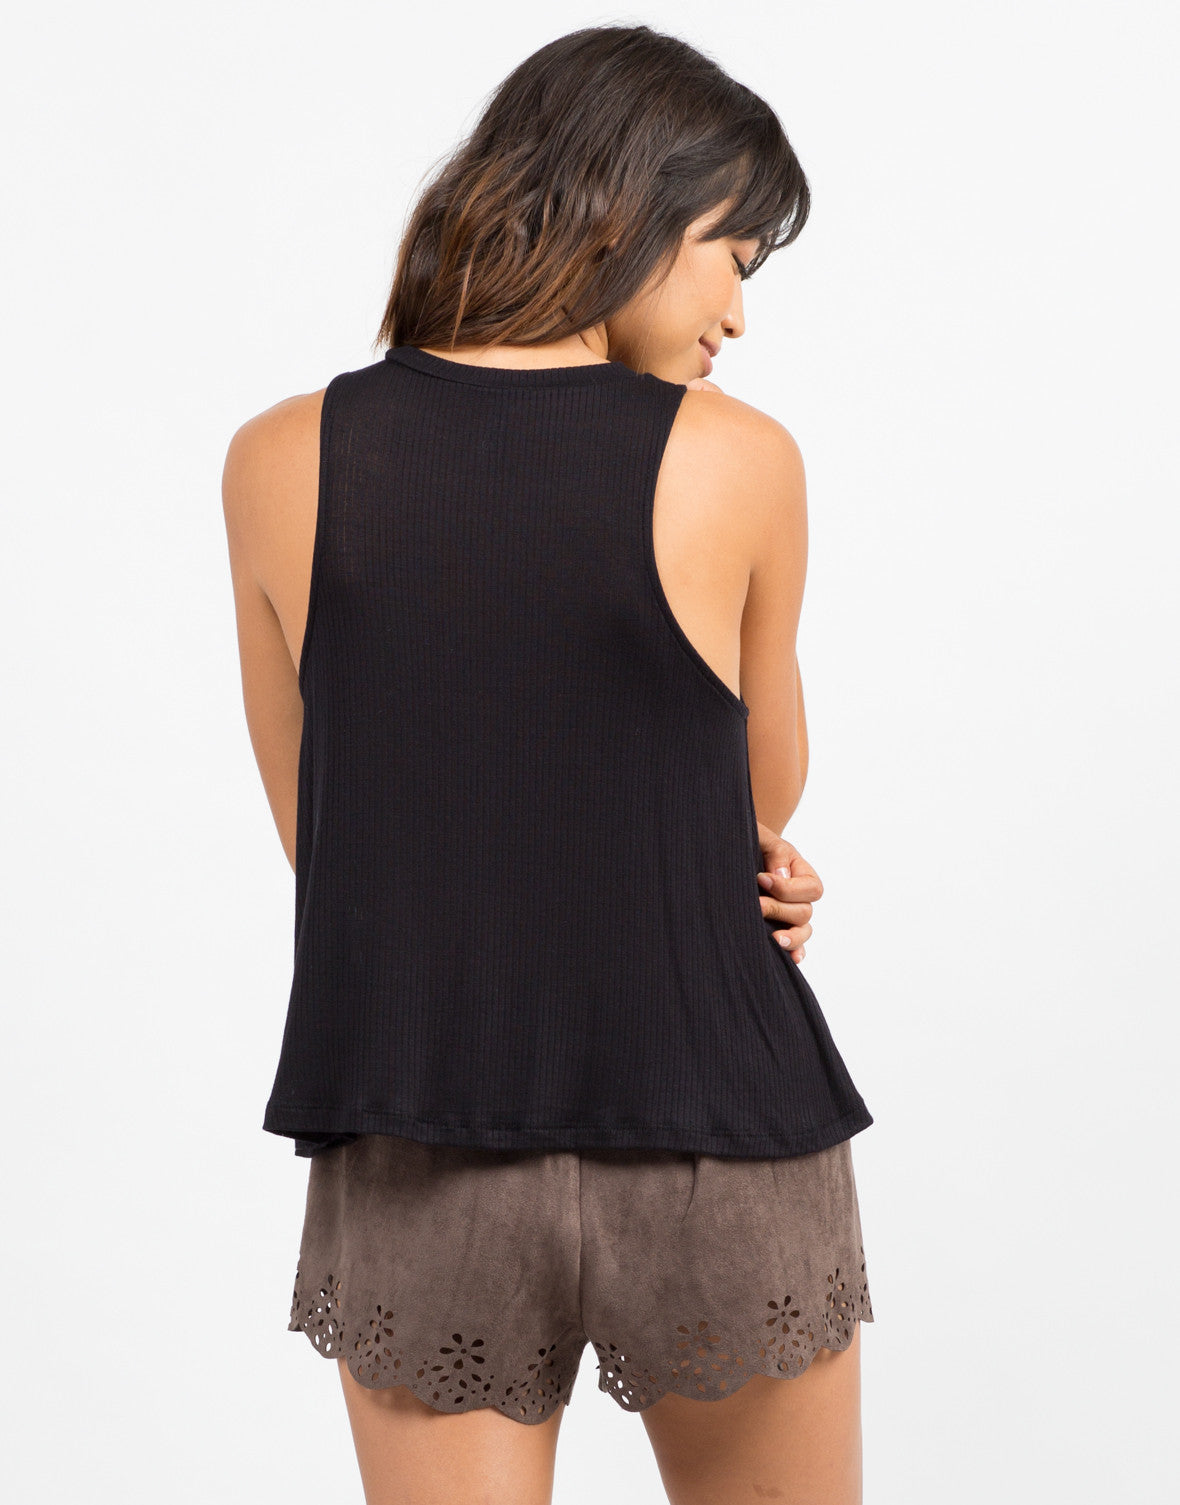 Back View of Ribbed Sleeveless Tank